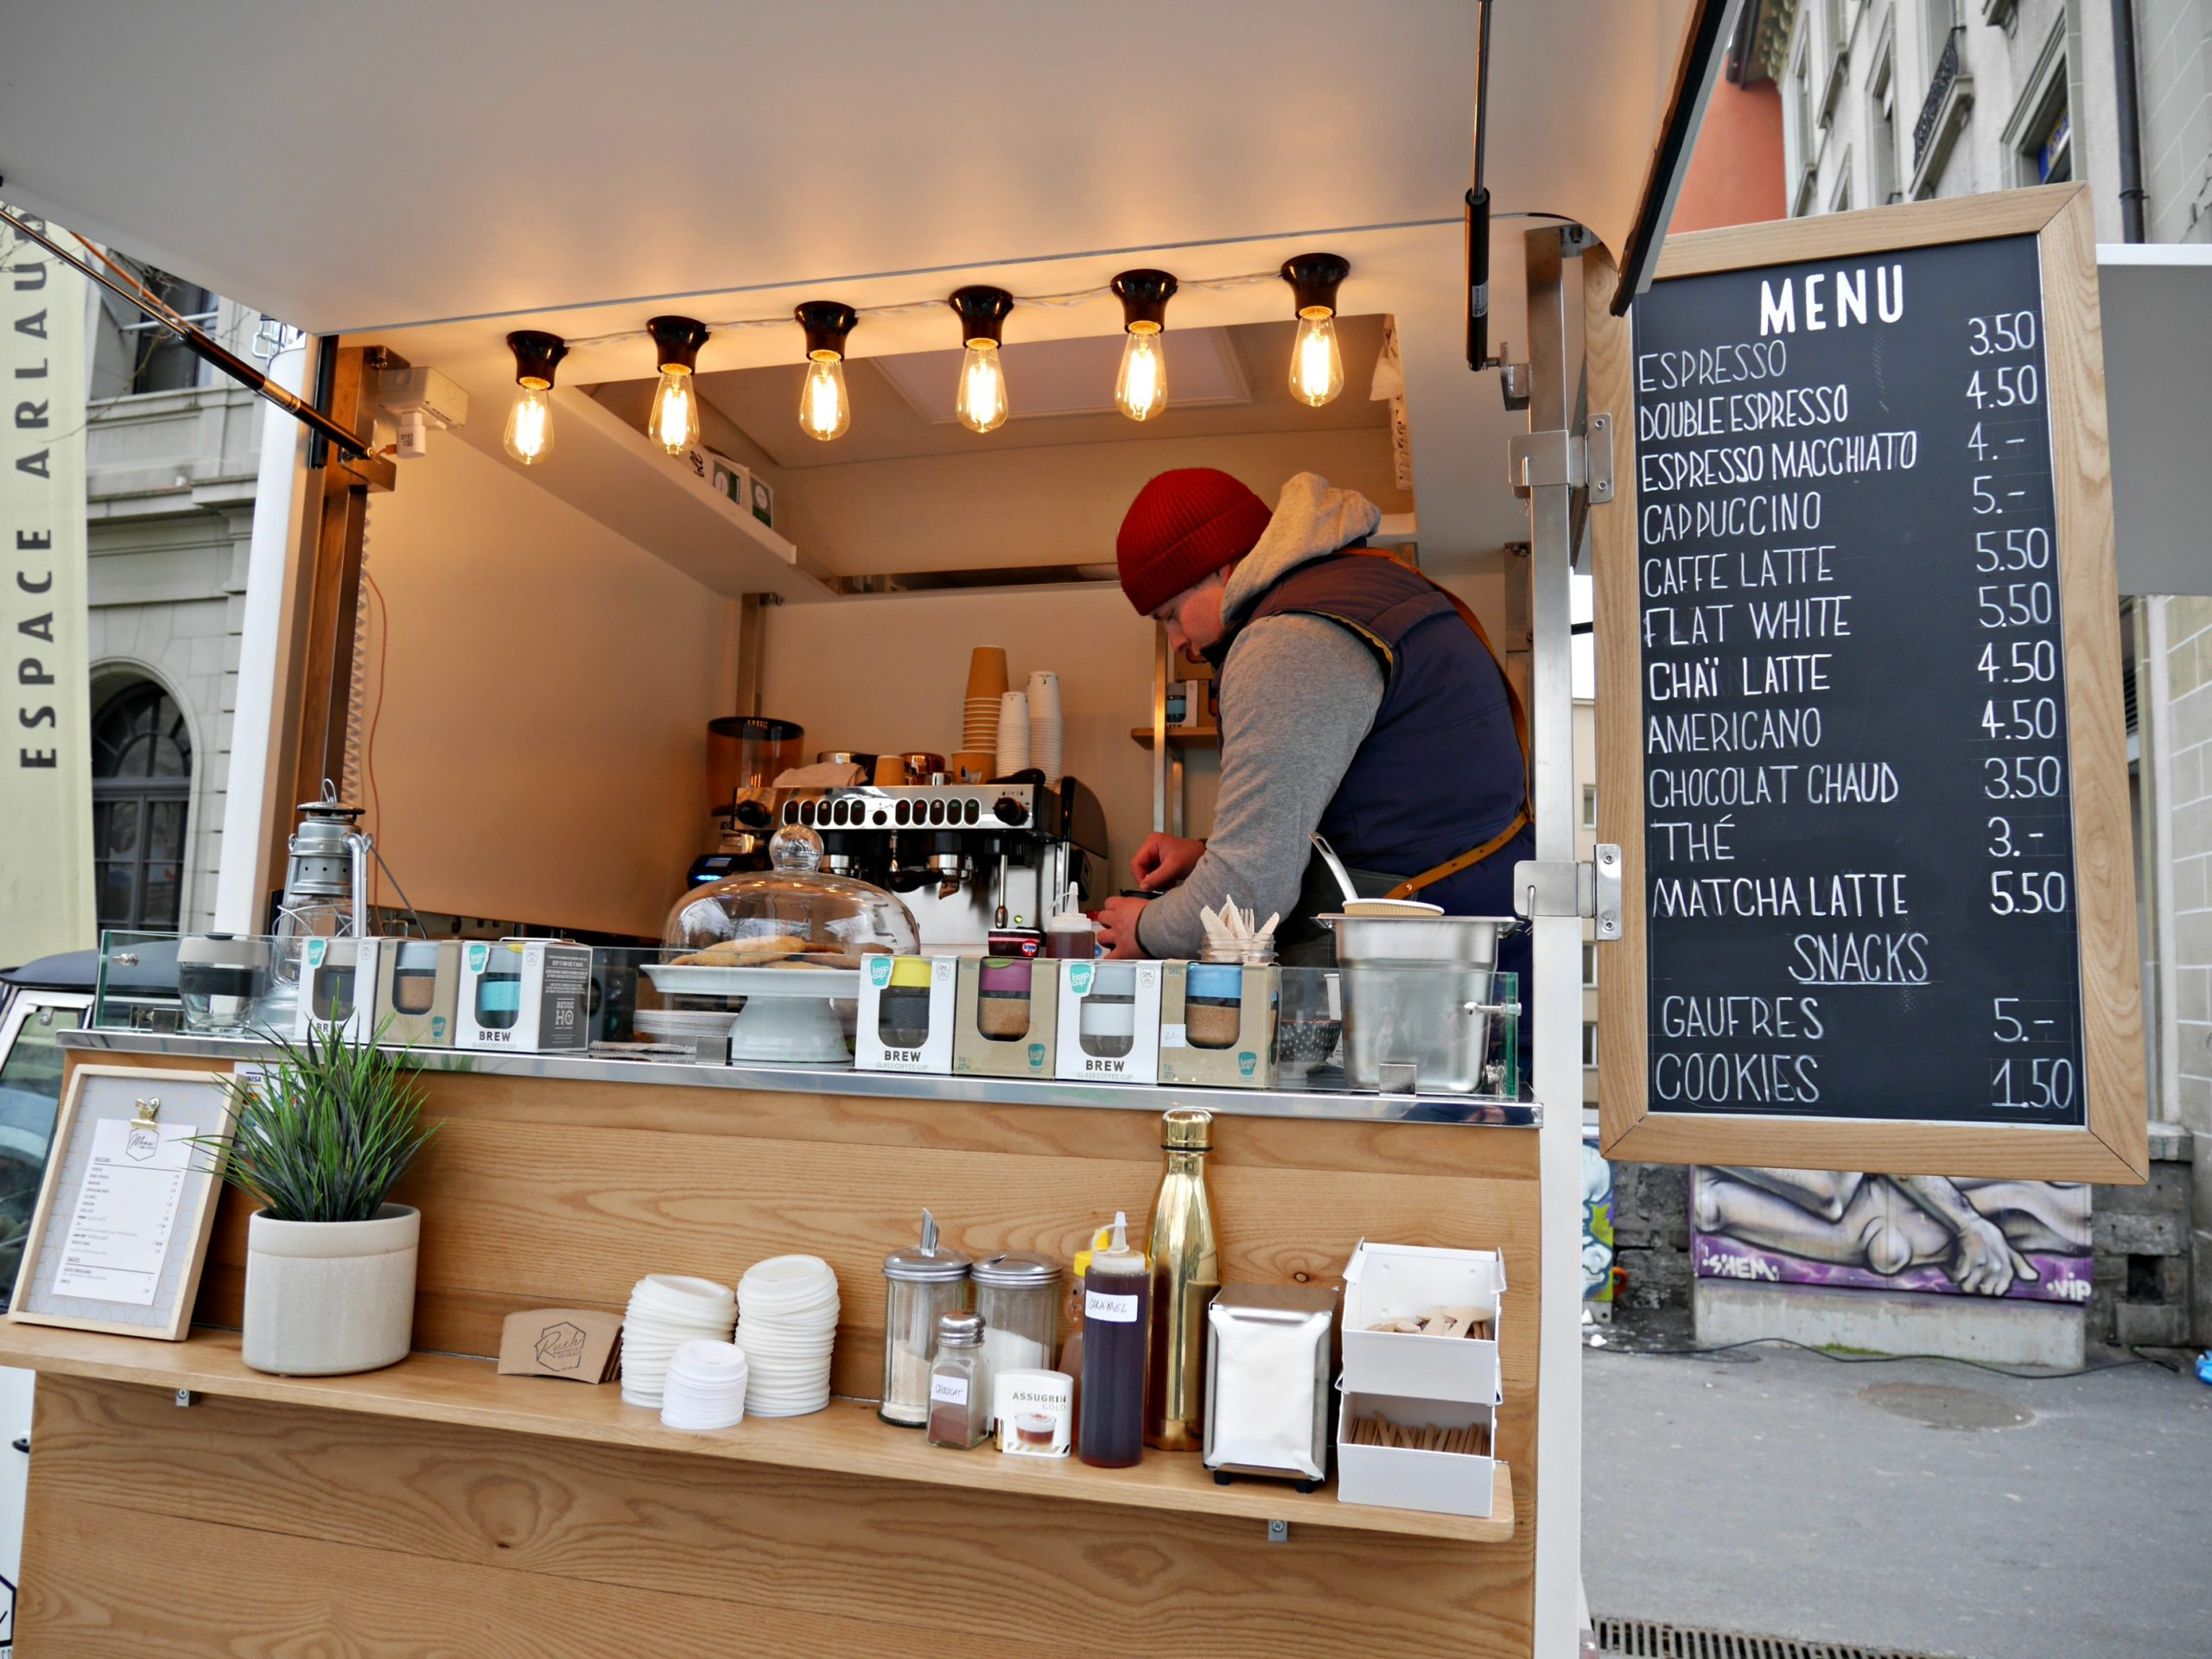 Rush Coffee Co Parks Its Mobile In Place De La Riponne Every Tuesday And Thursday We Must Say Couldnt Be More Ecstatic To See An Increase